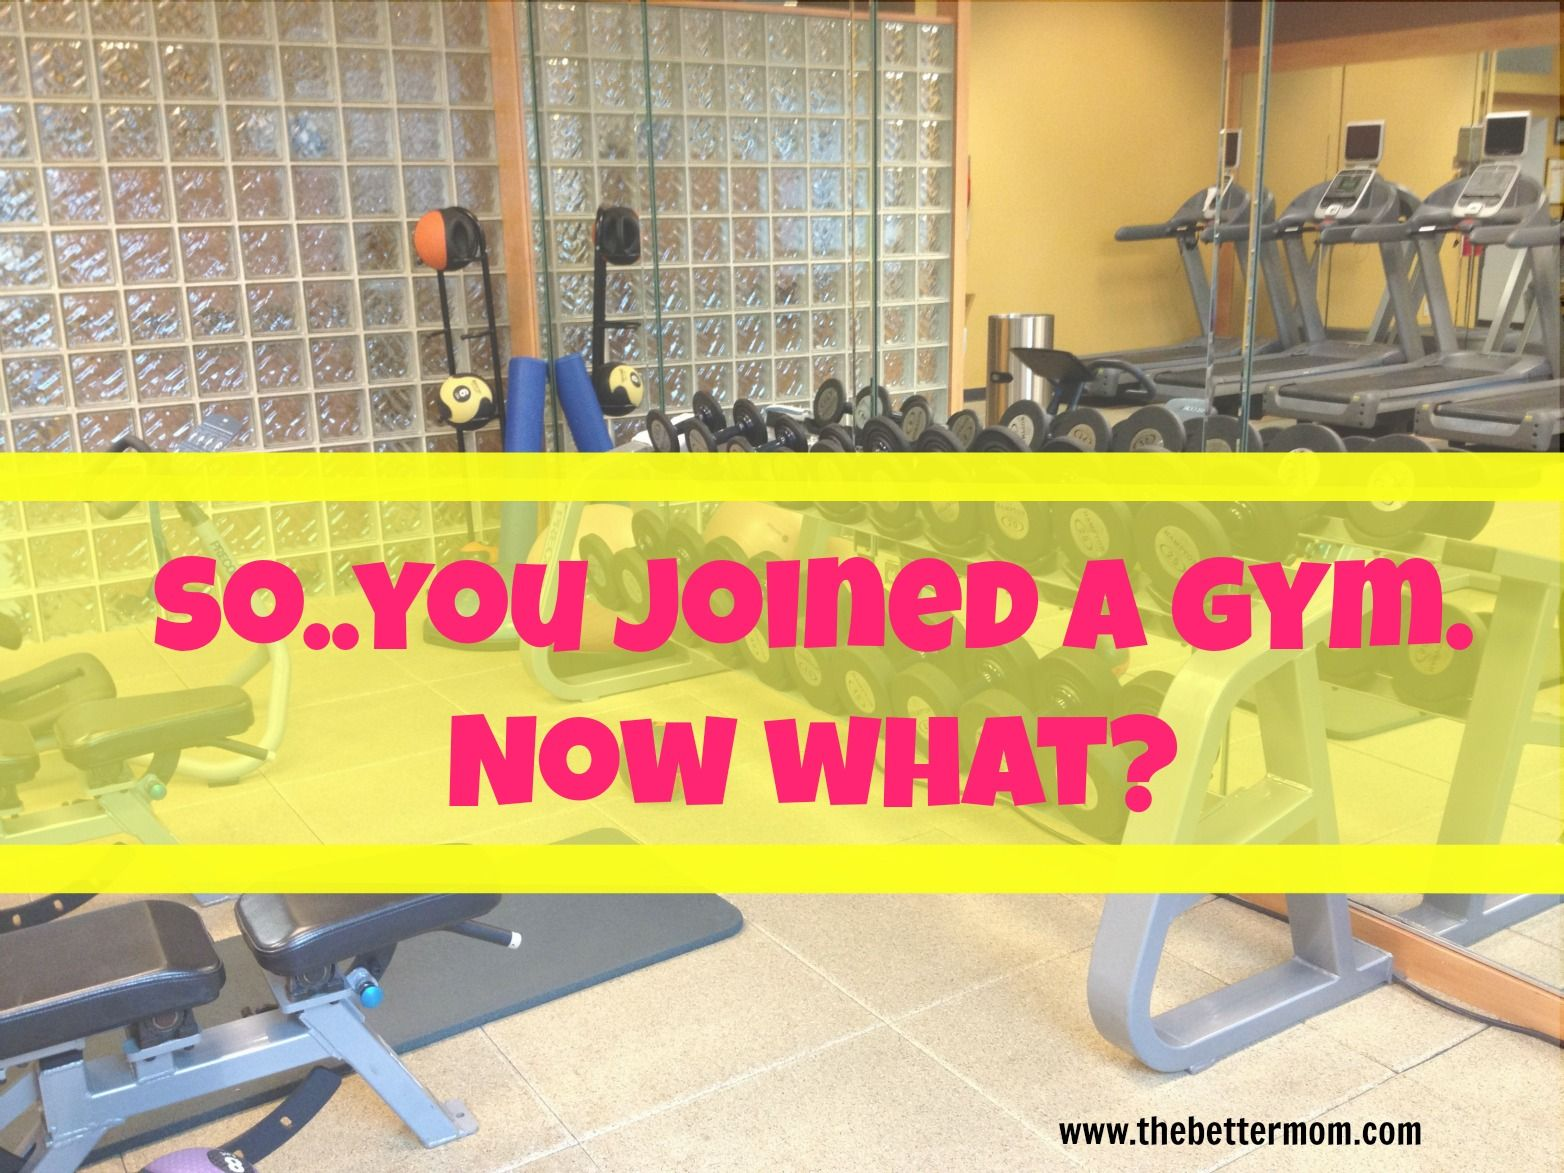 So you joined a gym.... Now what???